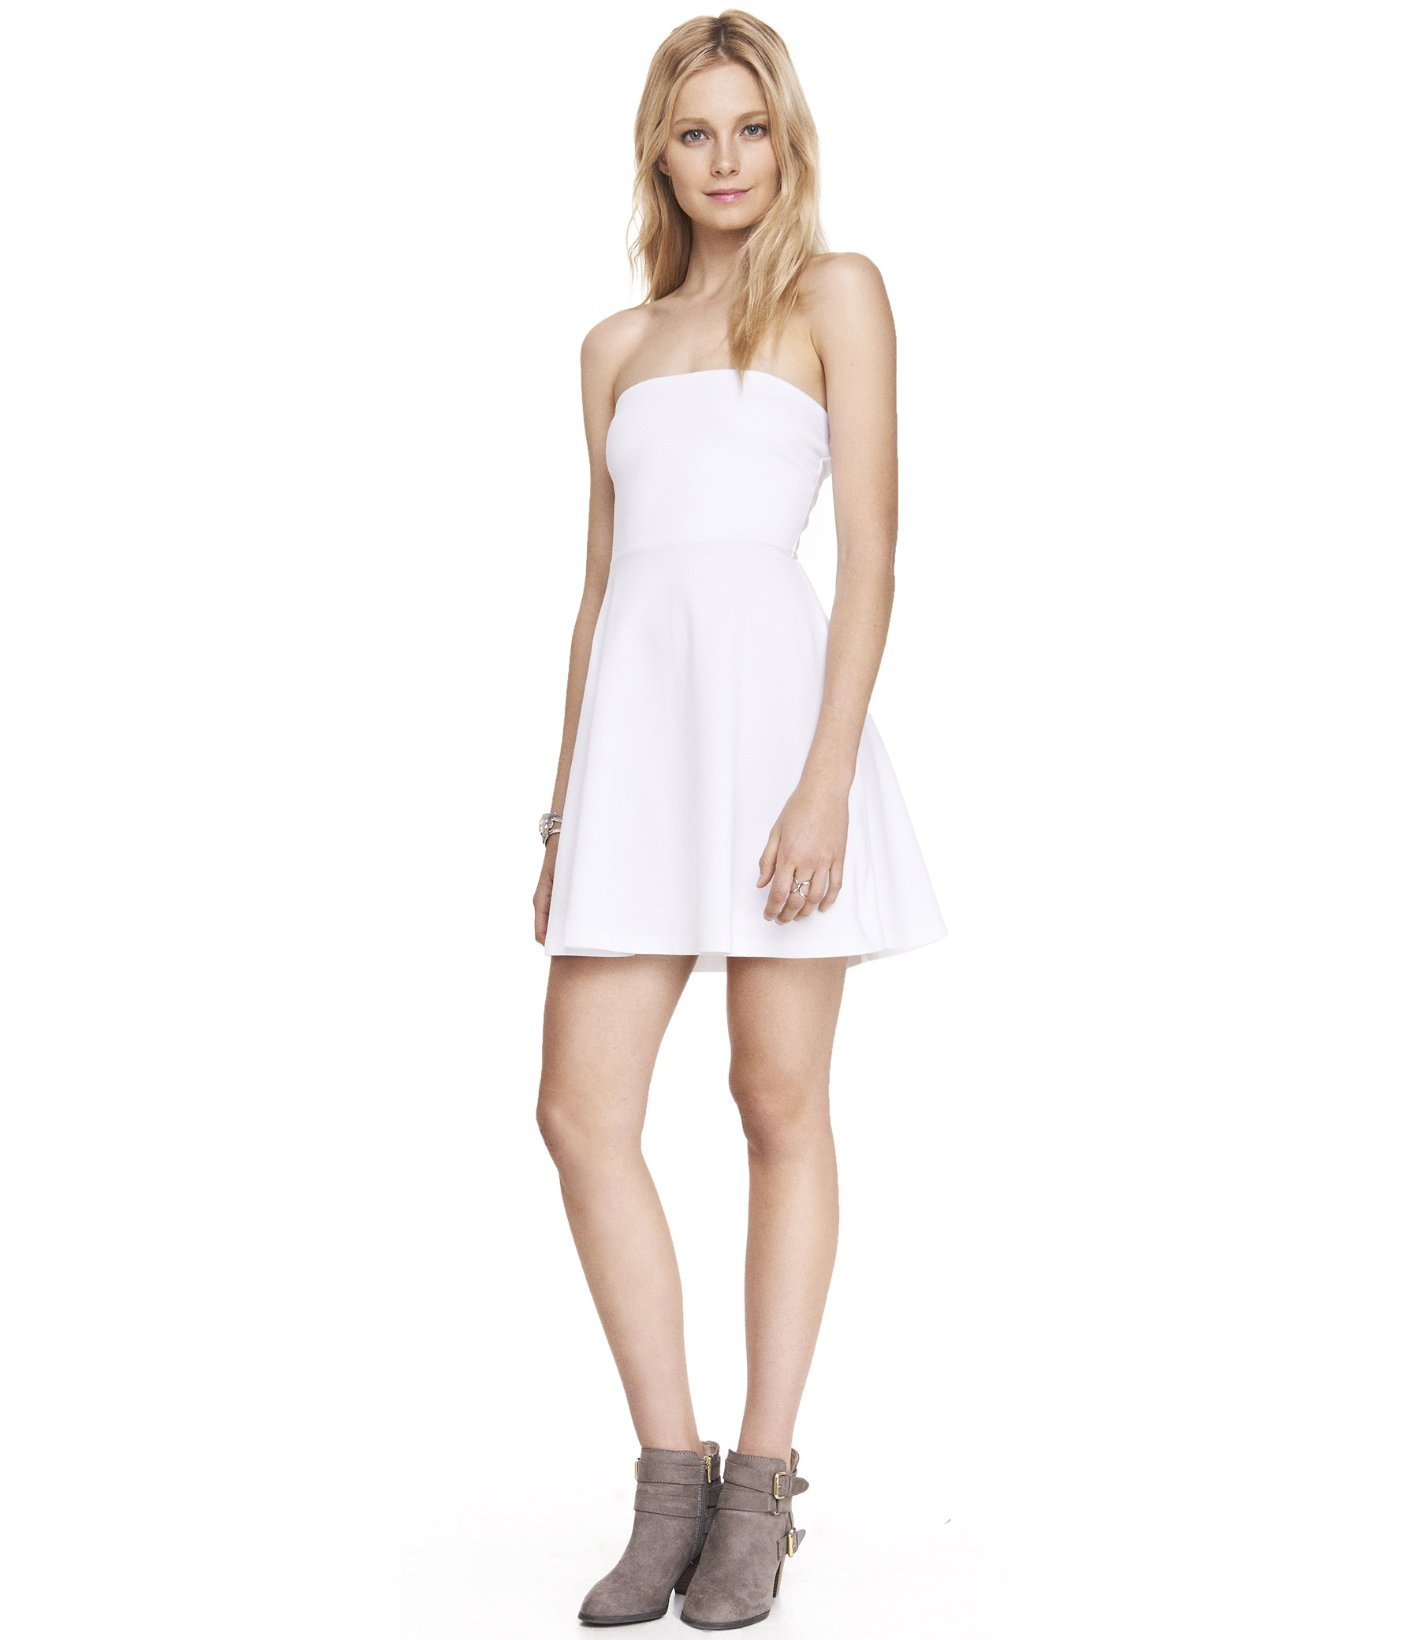 Express White Strapless Stretch Cotton Skater Dress in White | Lyst